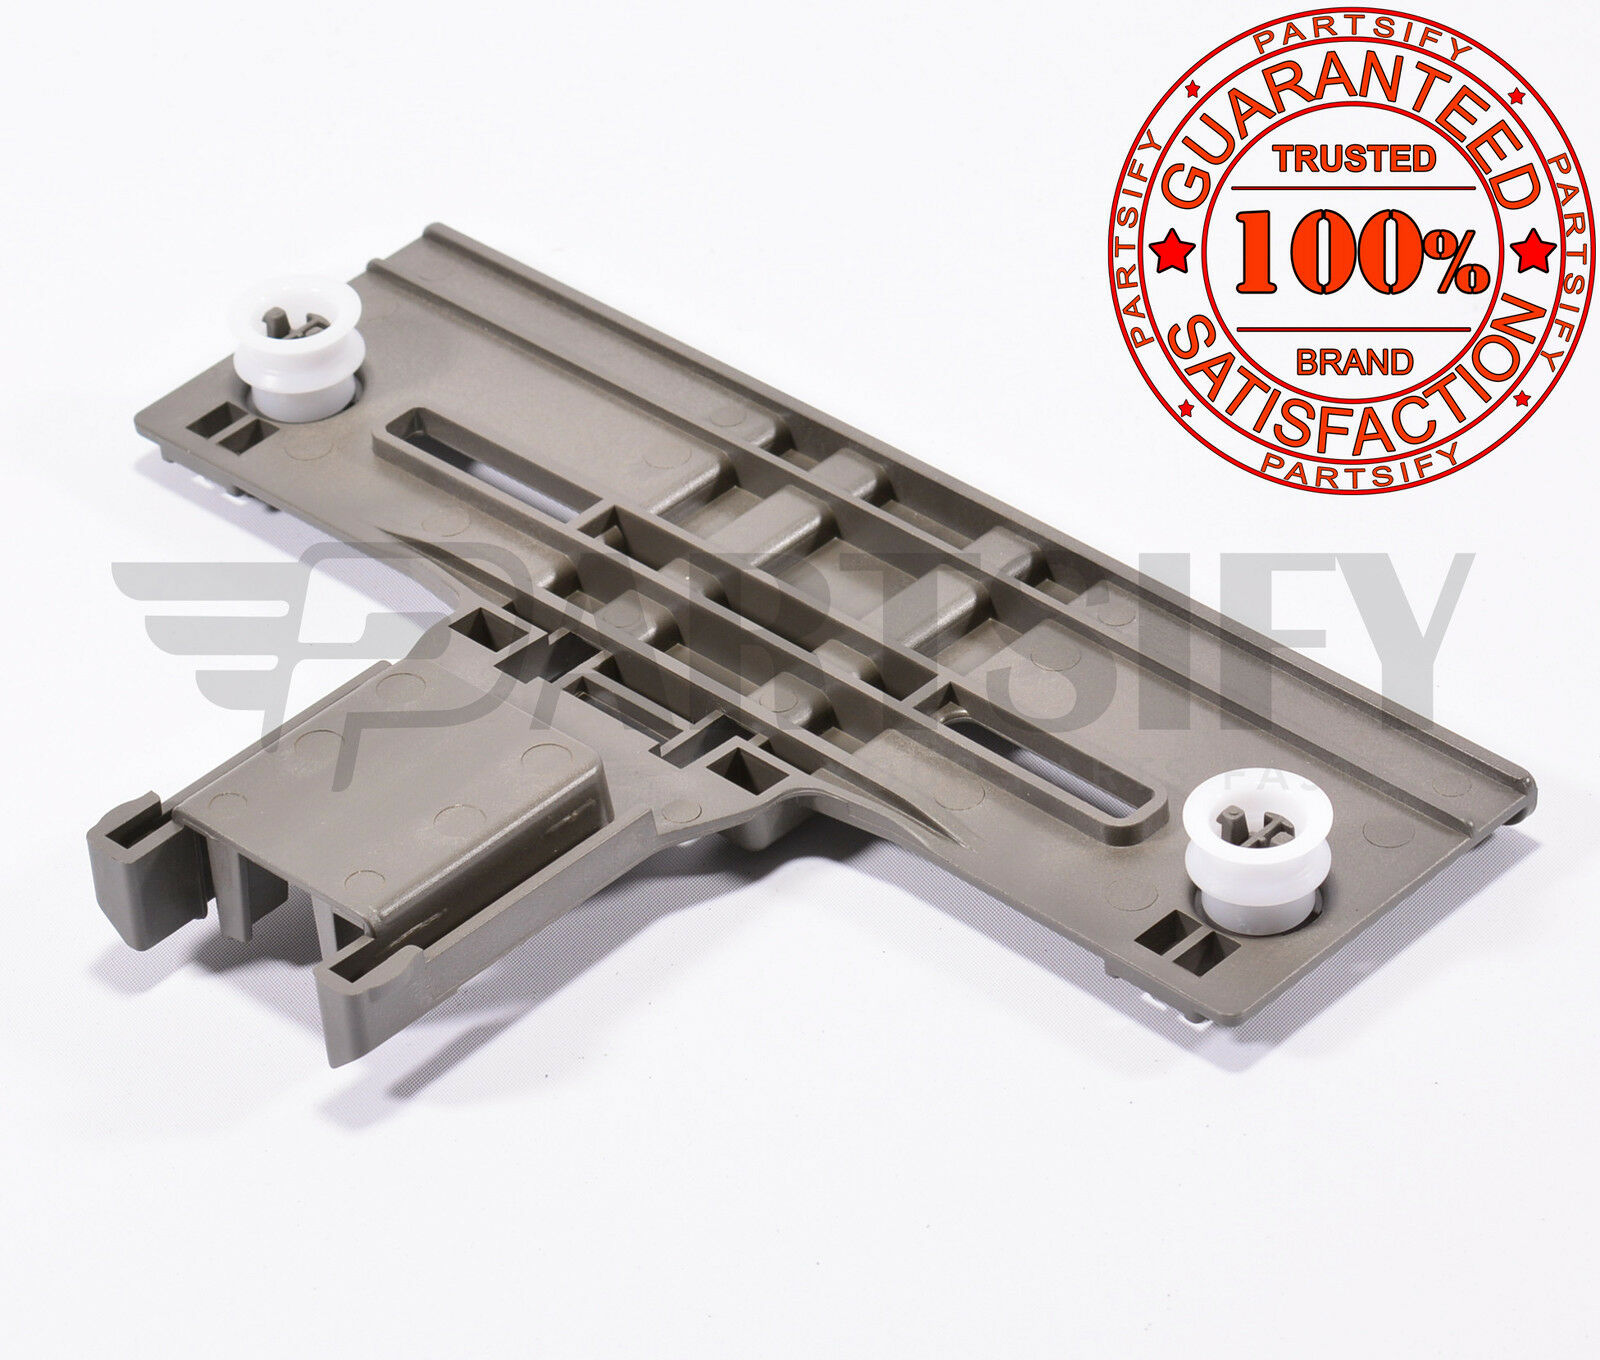 Details about NEW ERW10350376 DISHWASHER UPPER TOP RACK ADJUSTER FITS  KENMORE KITCHENAID SEARS